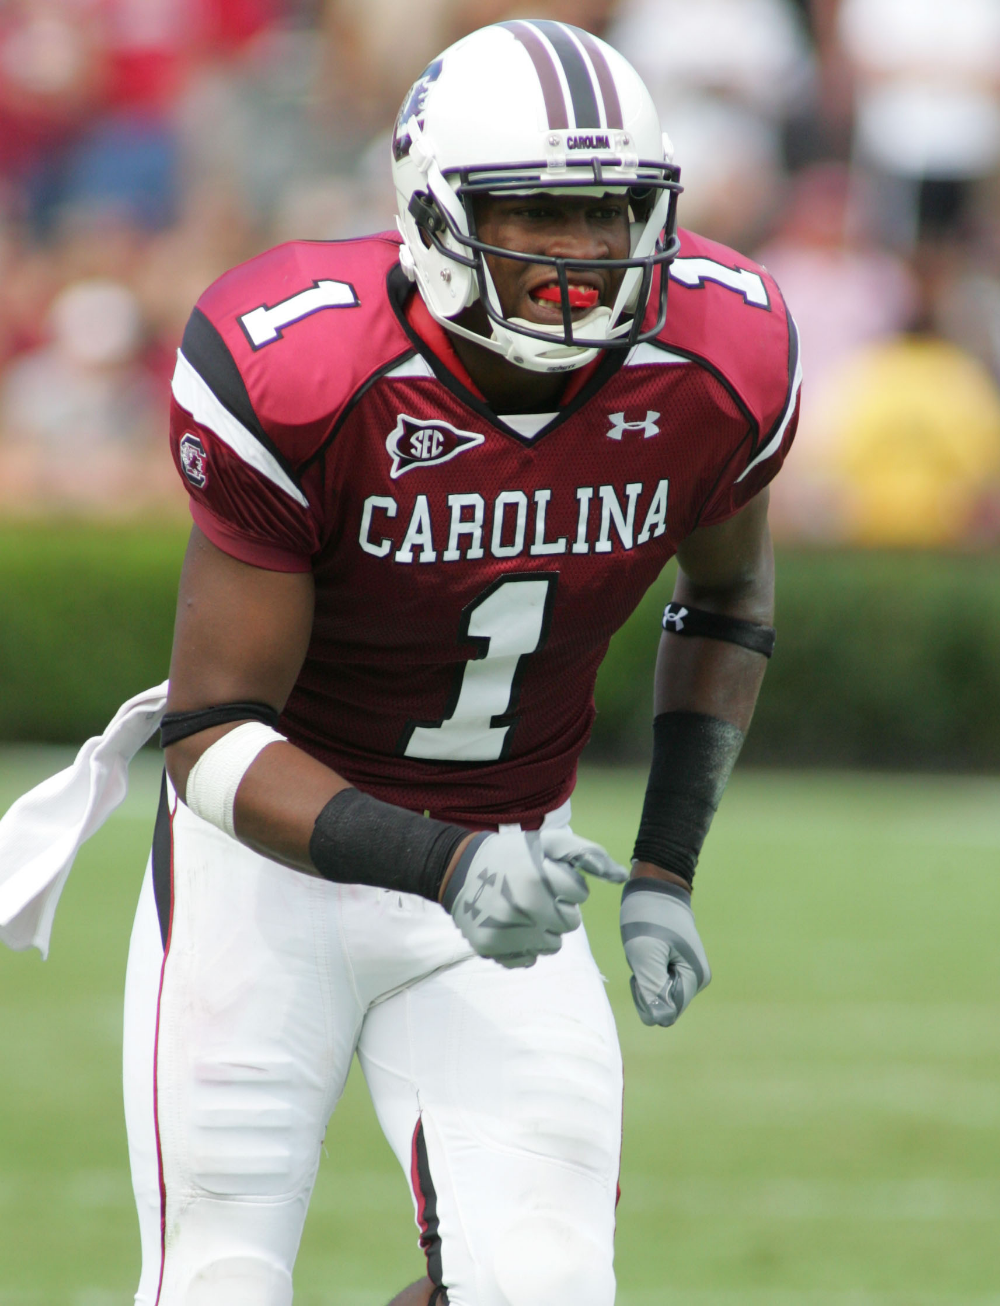 Alshon Jeffrey (With images) | South carolina football ...